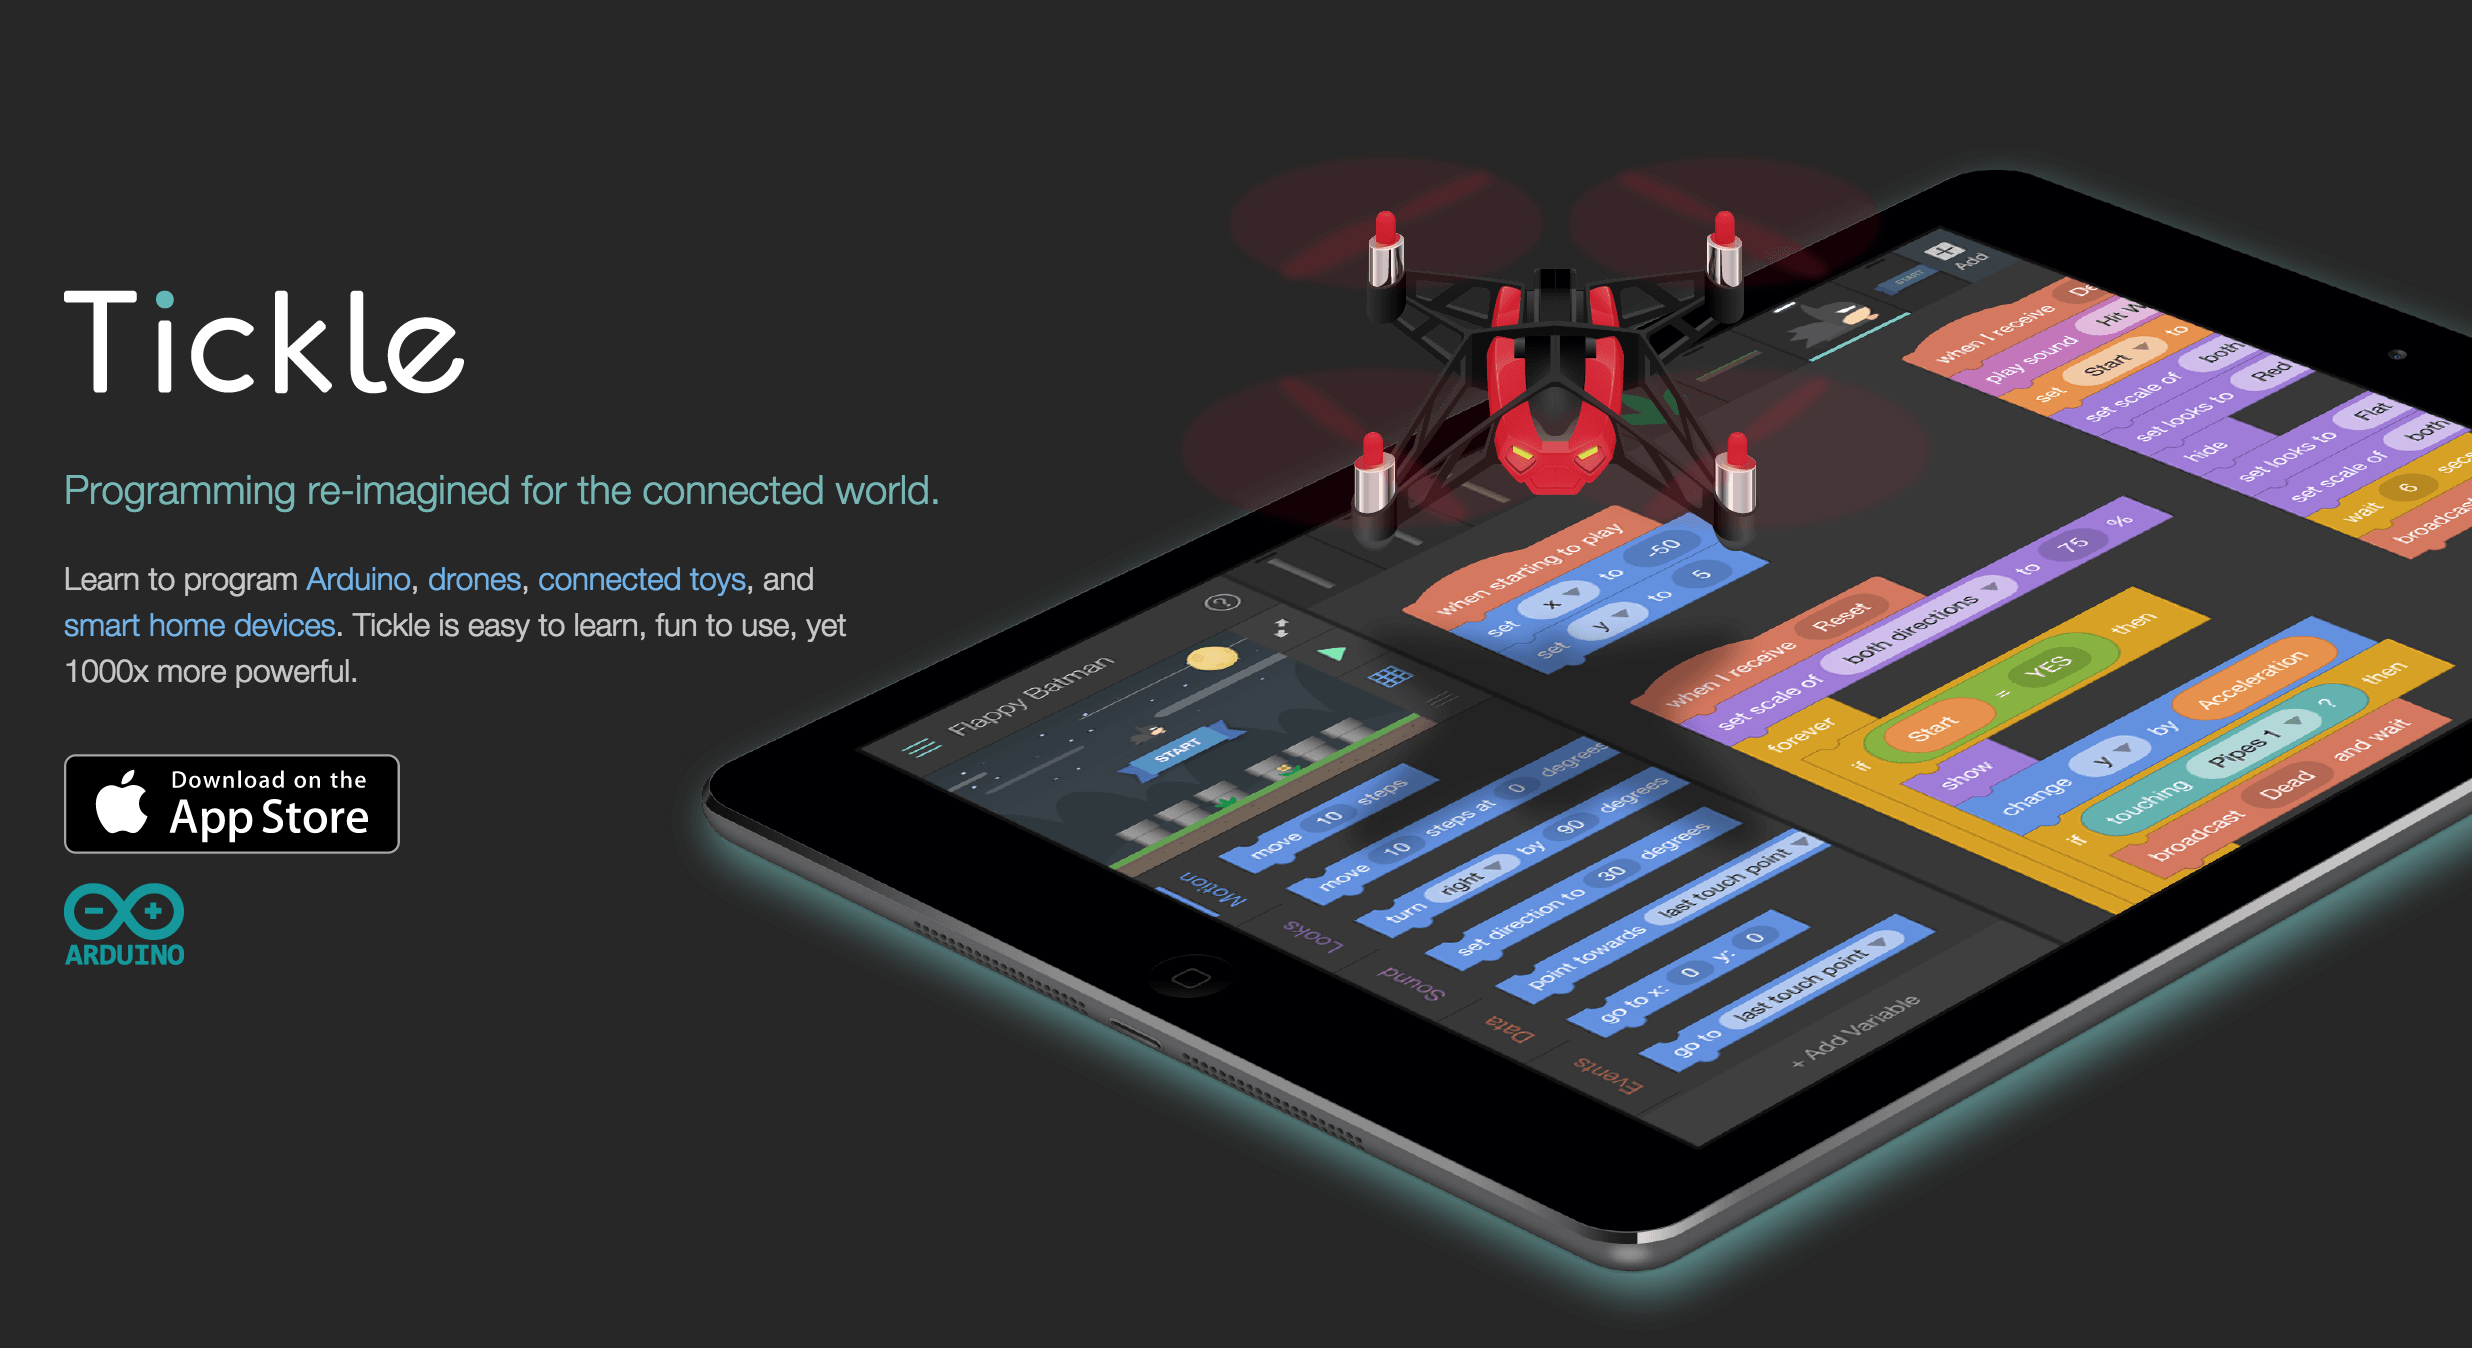 Tickle, or at least a great free computing app